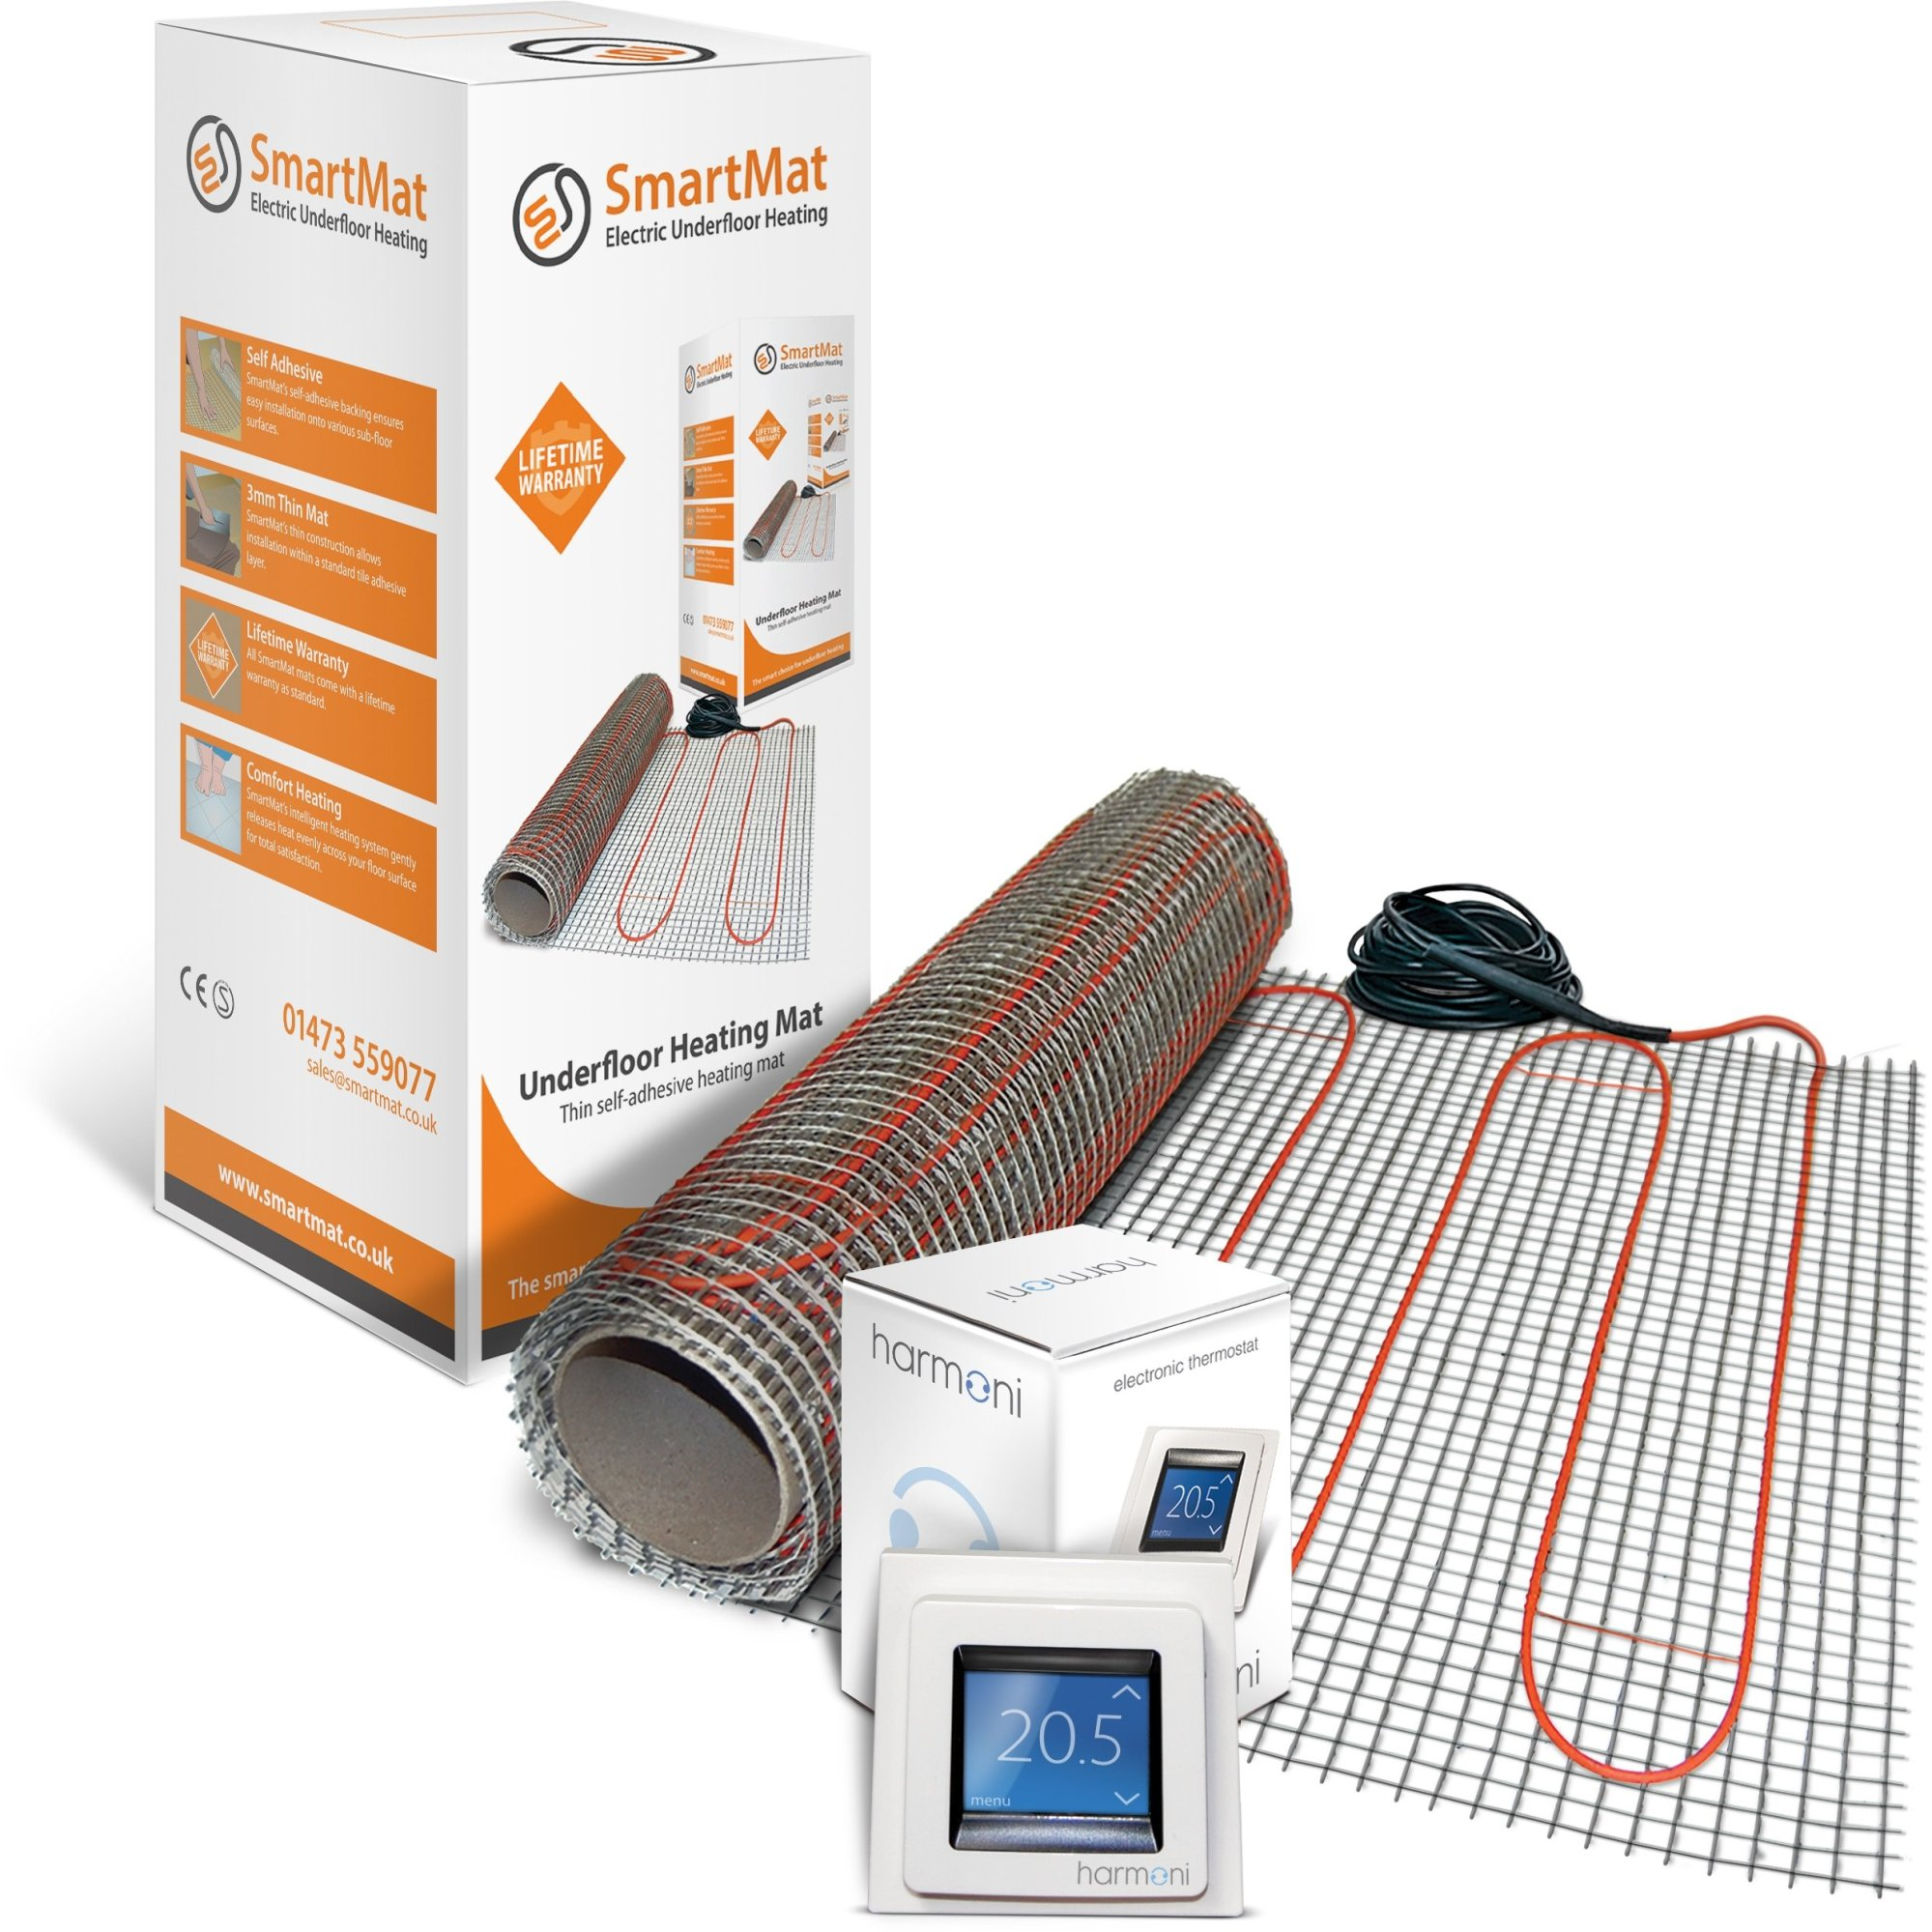 hight resolution of smartmat 150w m2 9 0m2 1350w underfloor heating kit harmoni 50 thermostat element shop